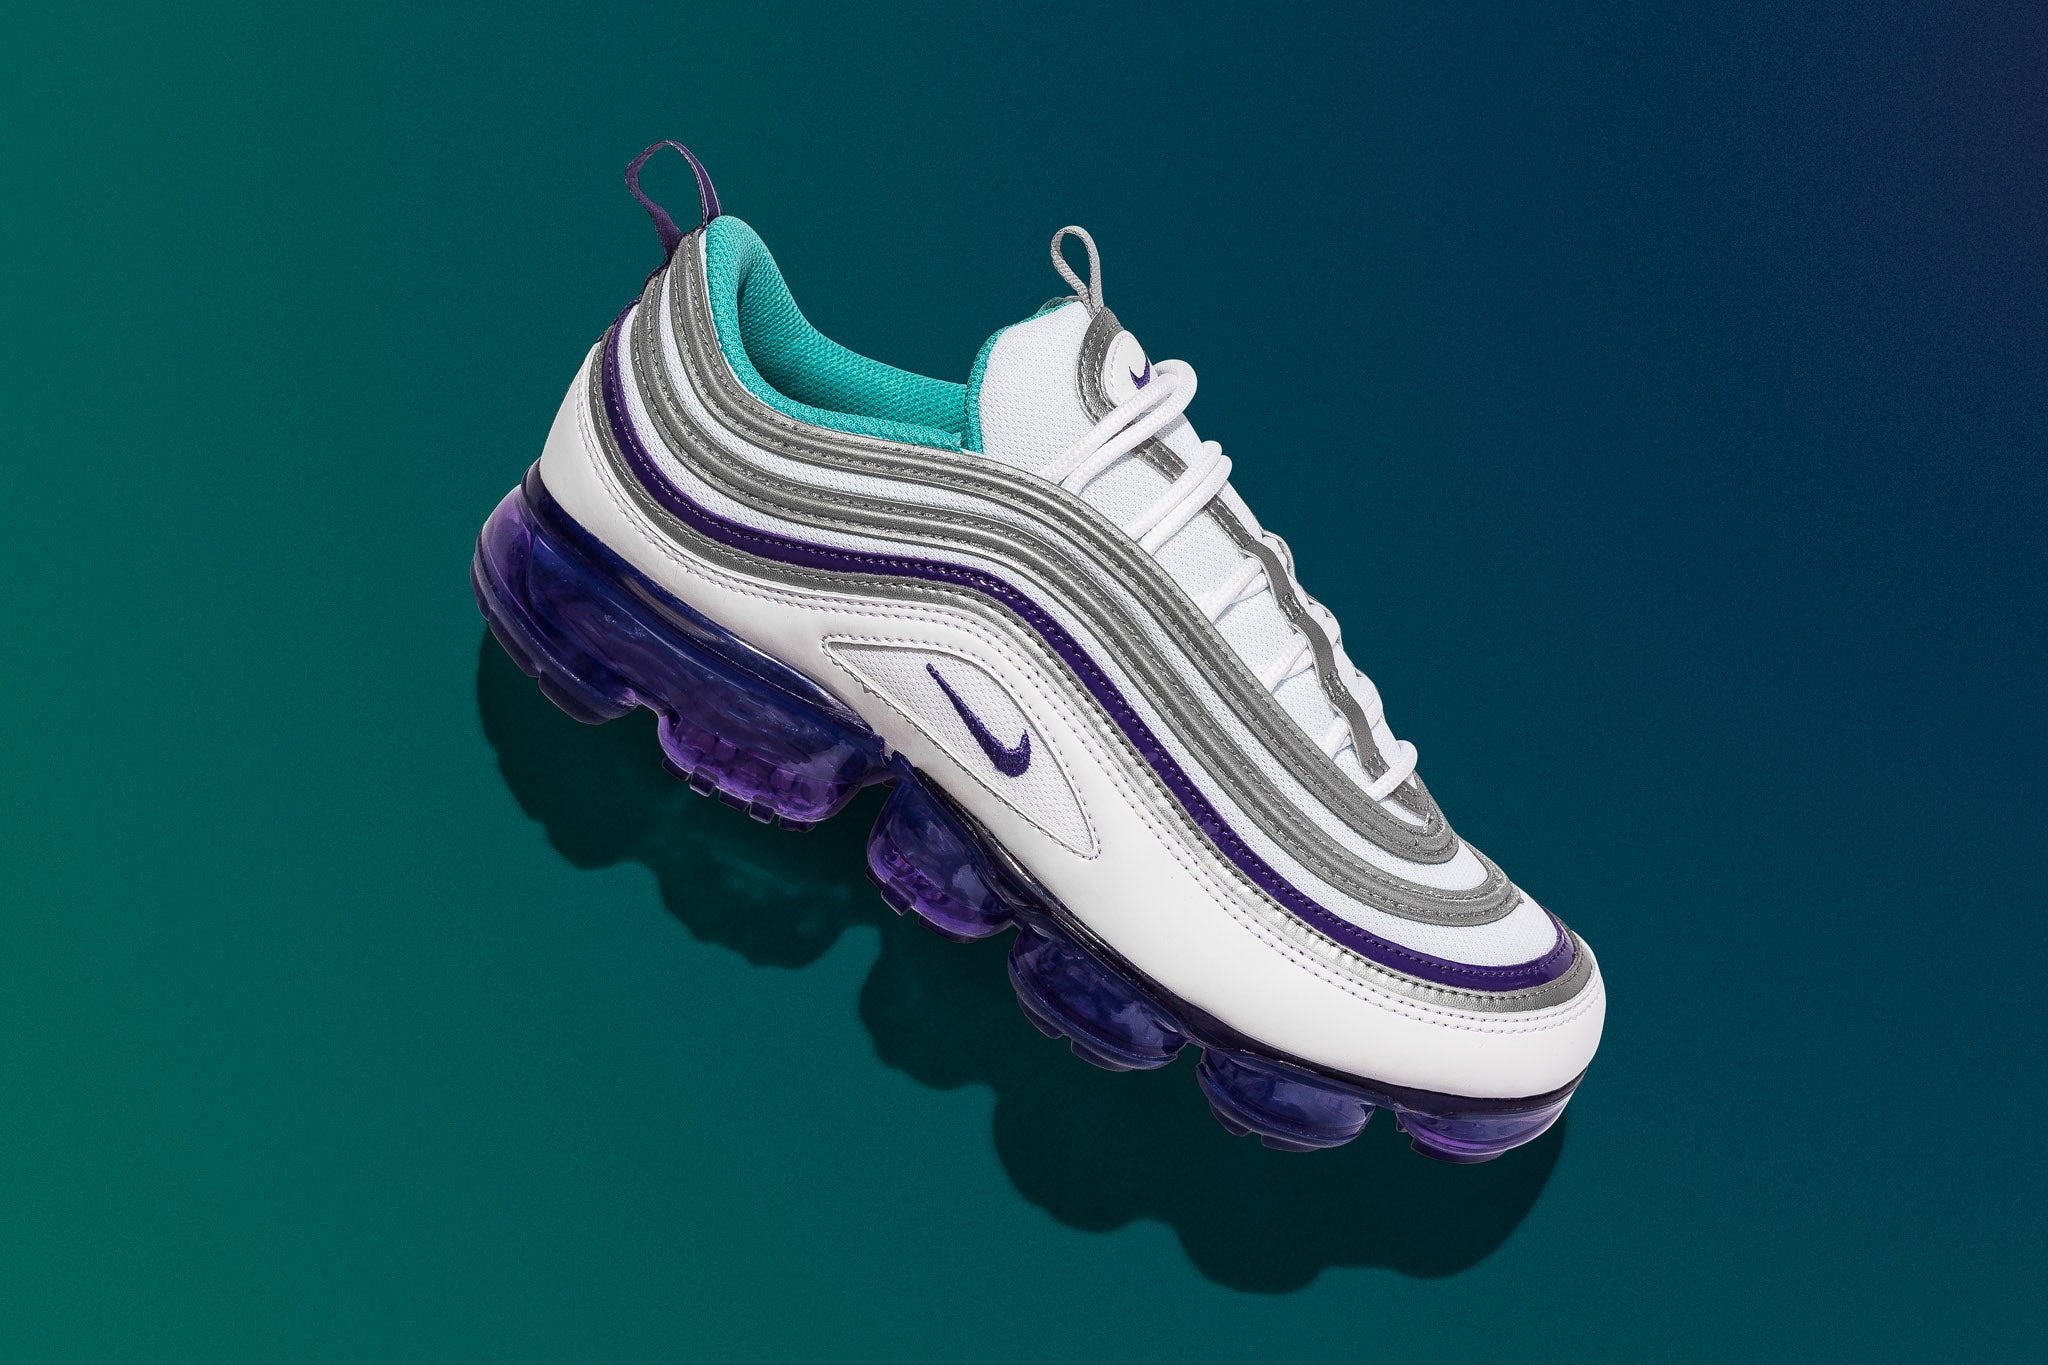 Air Vapormax 97 'Grape' 06.21.18